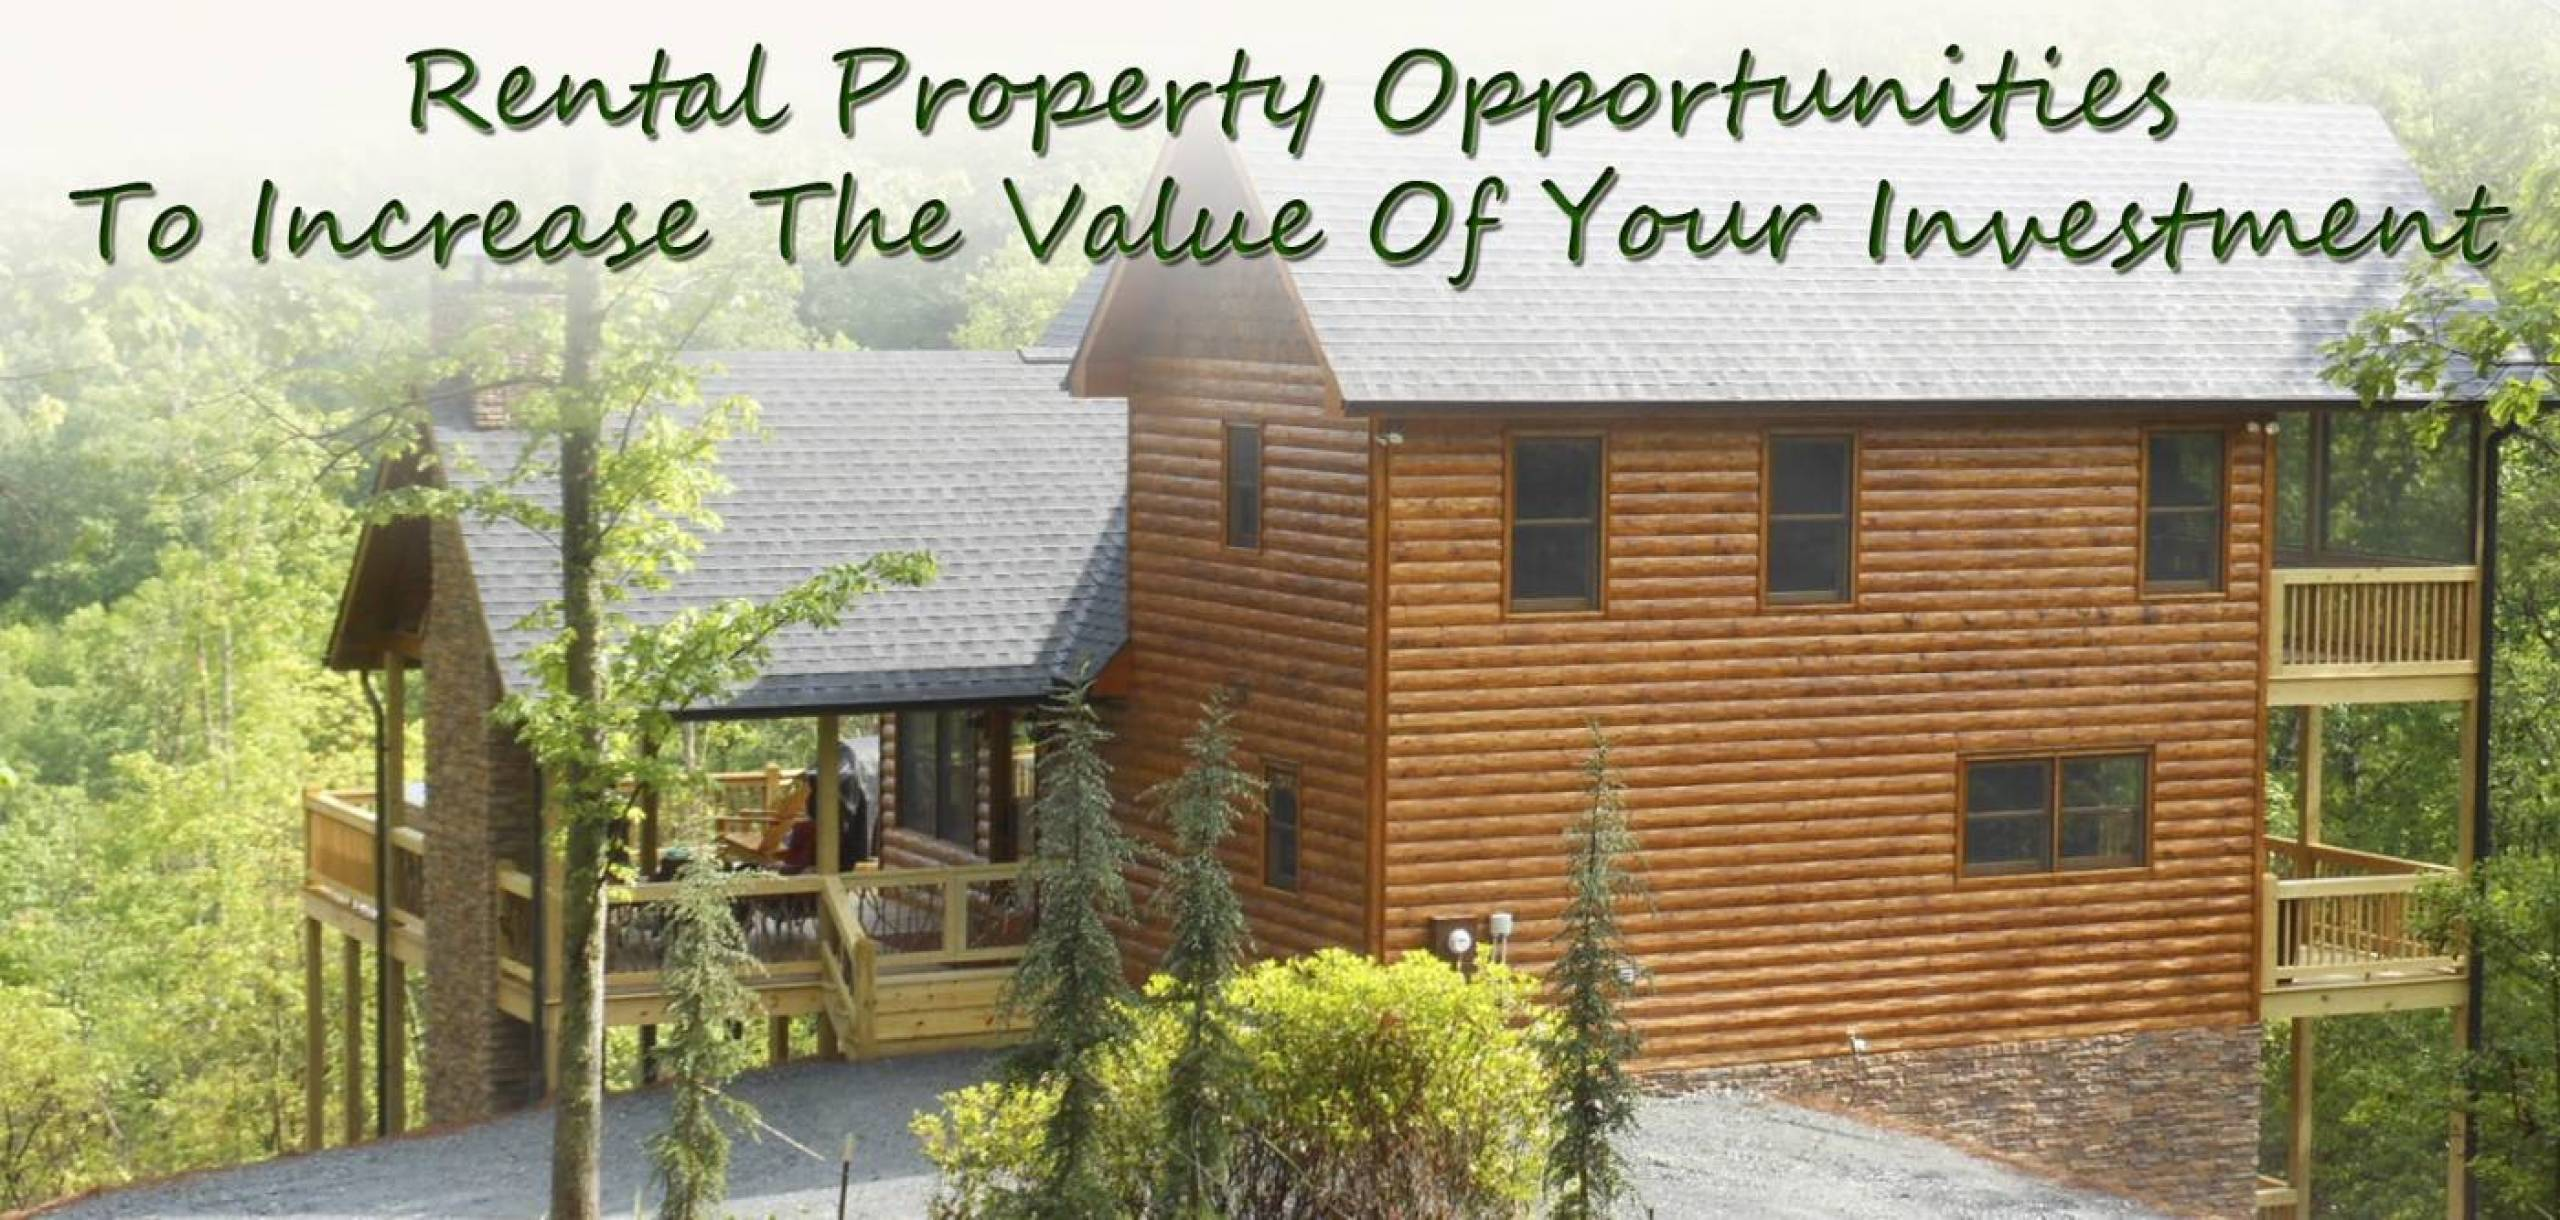 Rental Property Opportunities